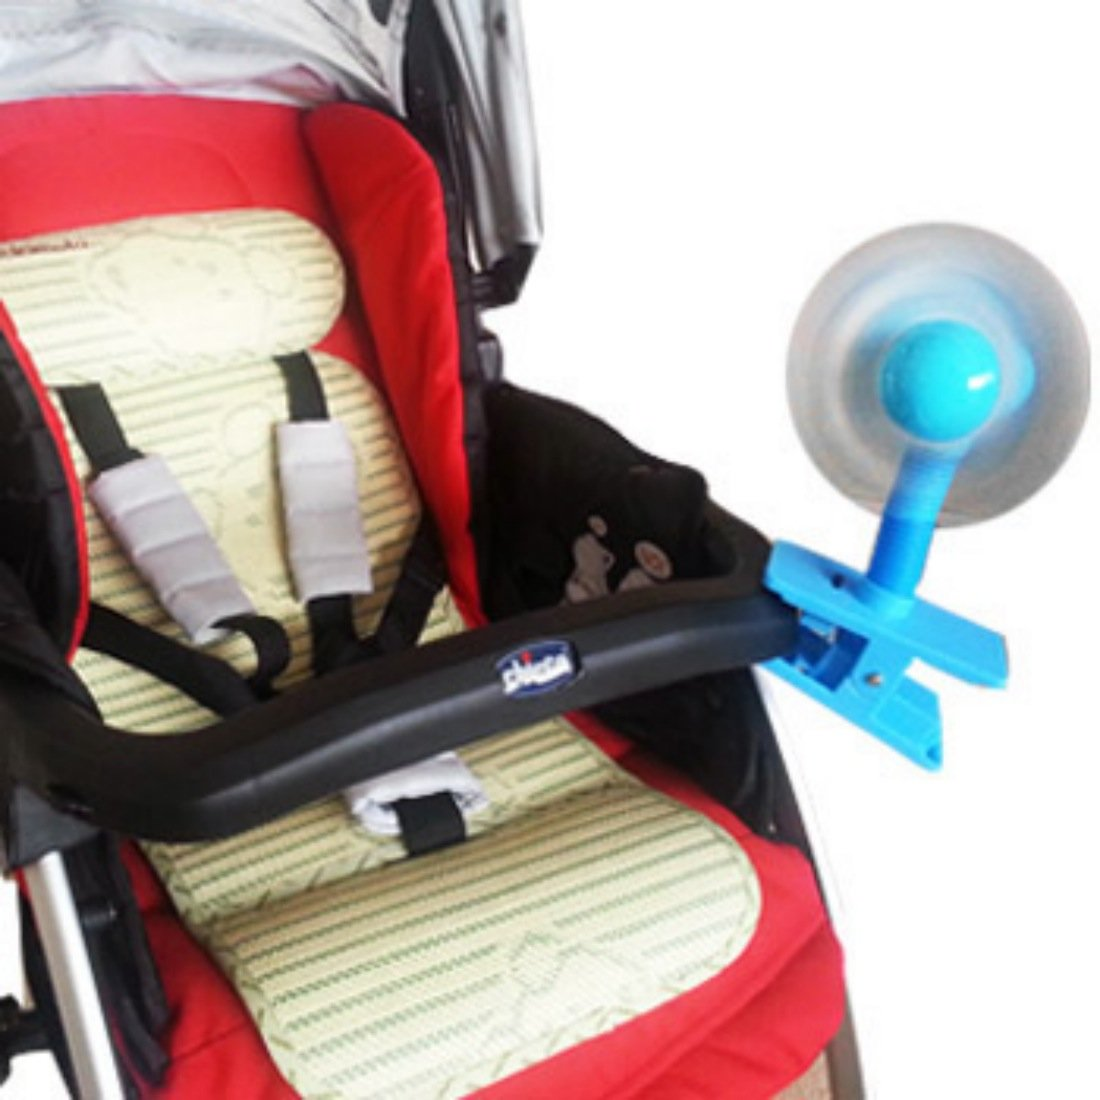 KF Baby Clip-On Mini Stroller Fan, Blue by KF baby (Image #5)